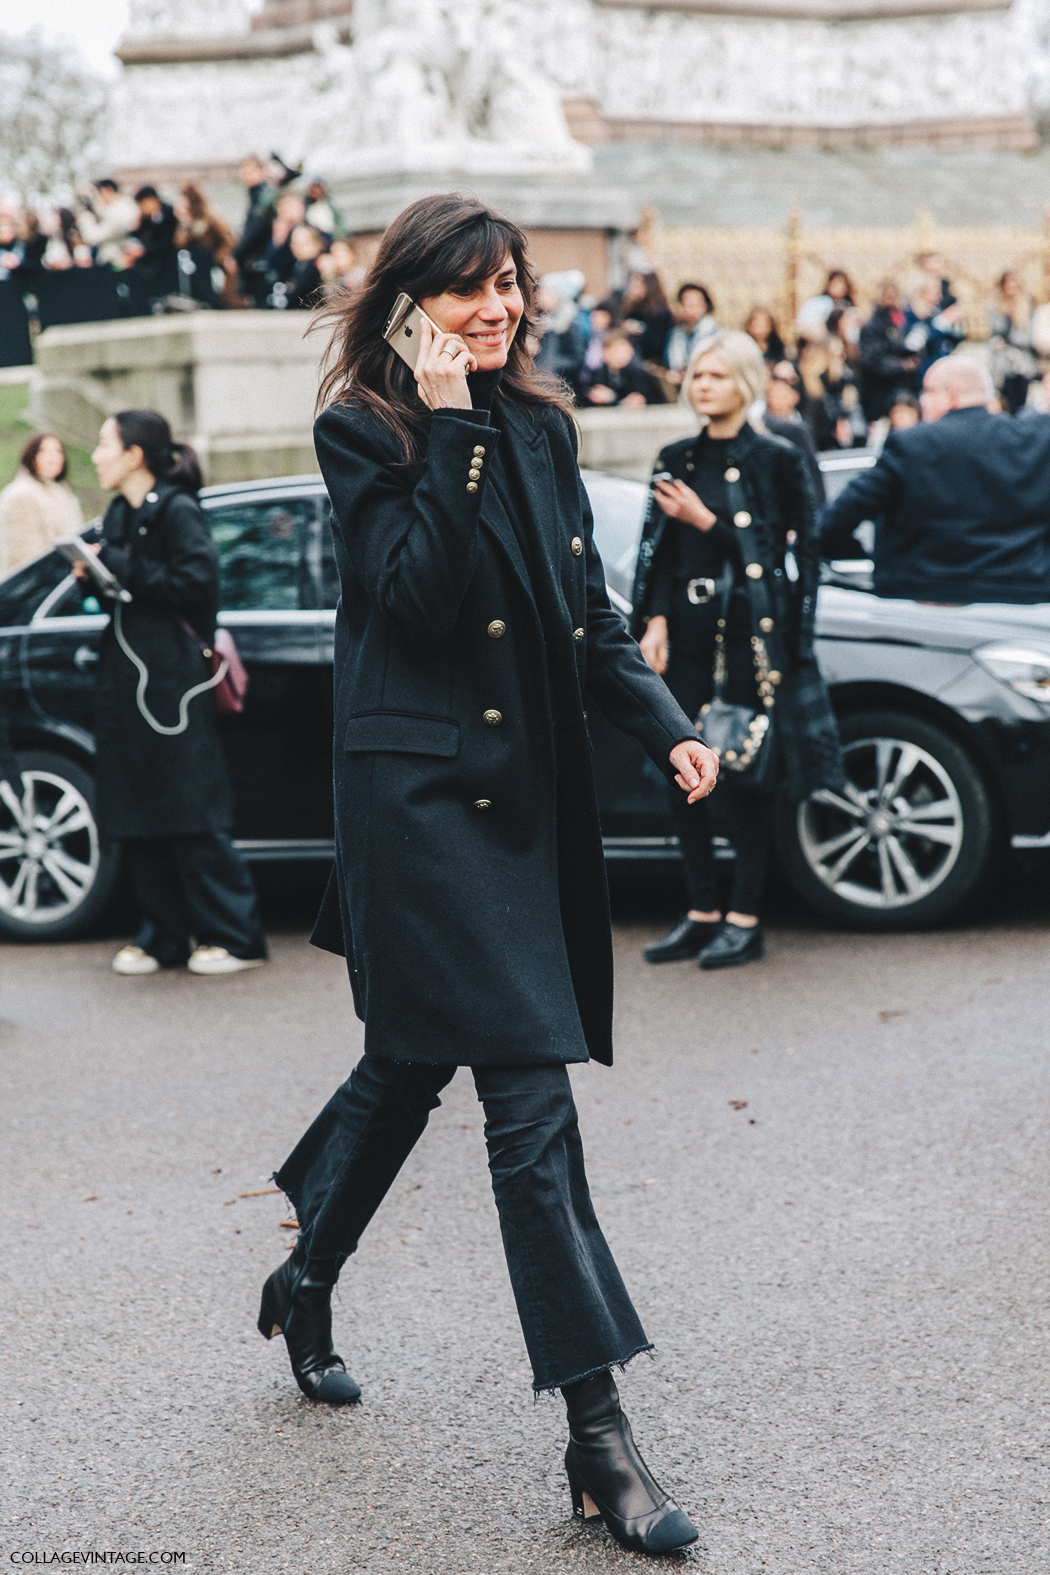 LFW-London_Fashion_Week_Fall_16-Street_Style-Collage_Vintage-Emmanuel_Alt-Black_outfit-Chanel_Boots-